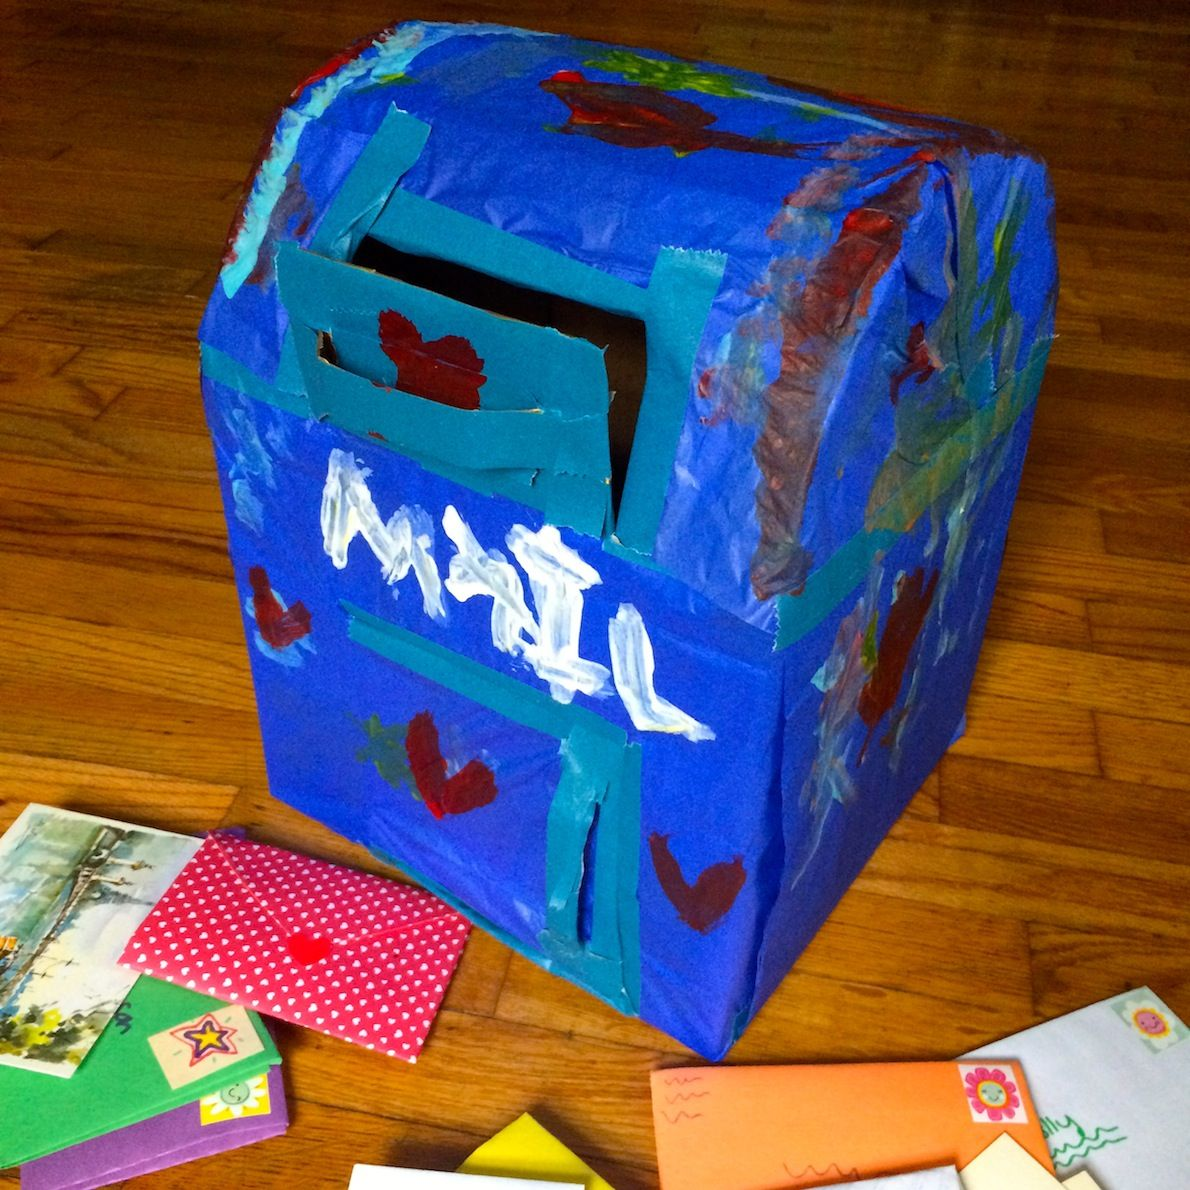 Cardboard Play Mailbox Books And Fun Mail Activities For